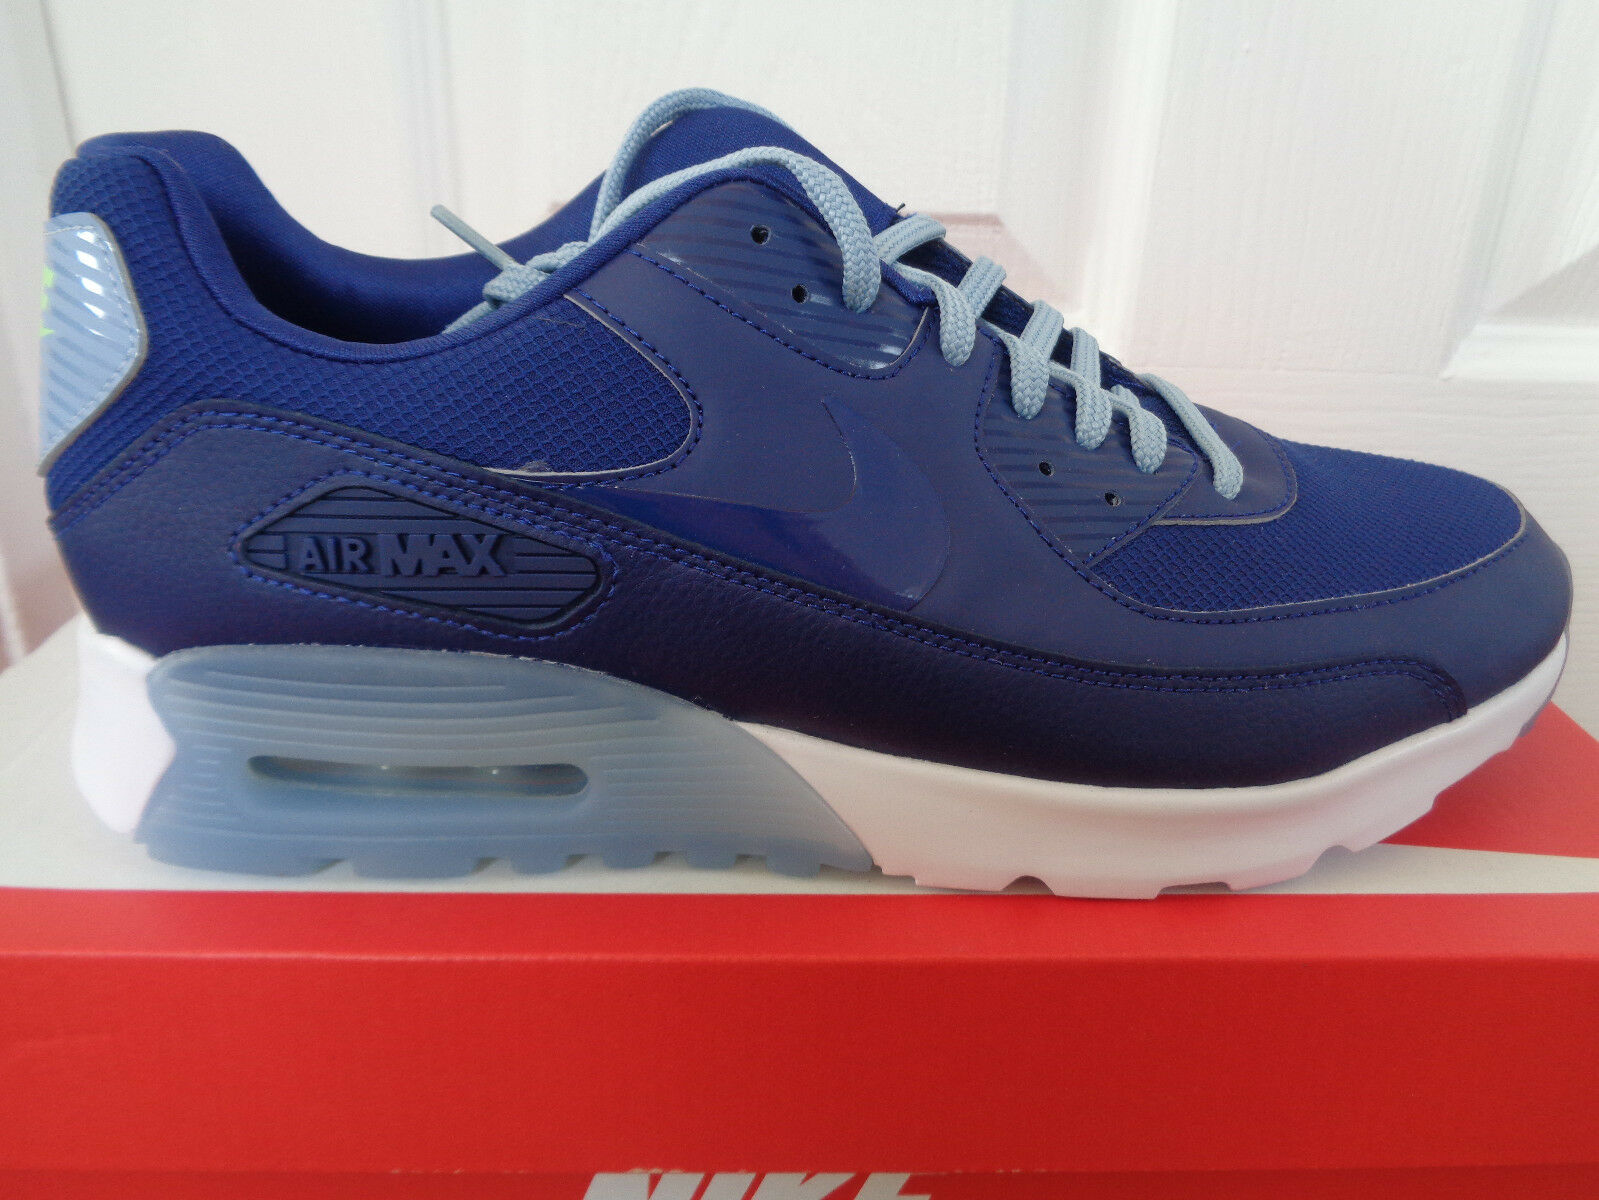 Nike Air max 90 ultra uk essential trainers 724981 402 uk ultra 5.5 eu 39 us 8 NEW+BOX ebf073